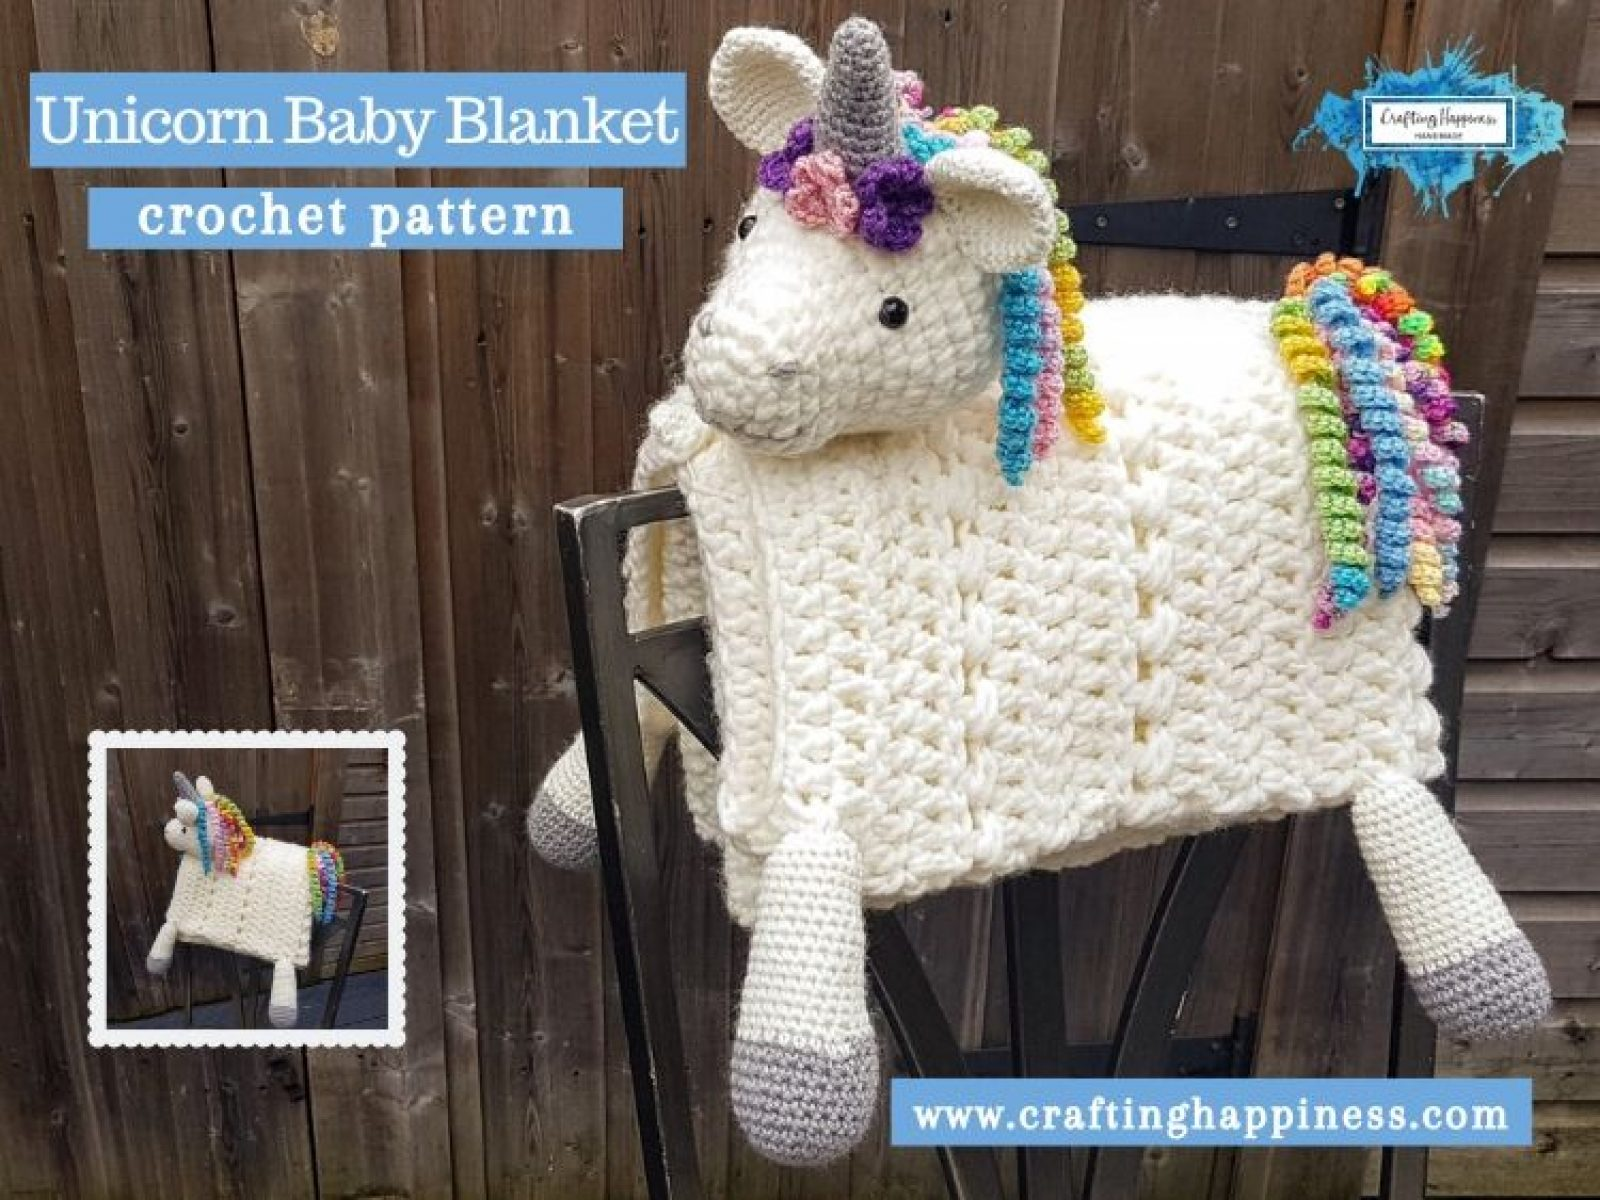 Unicorn Baby Blanket by Crafting Happiness FACEBOOK POSTER